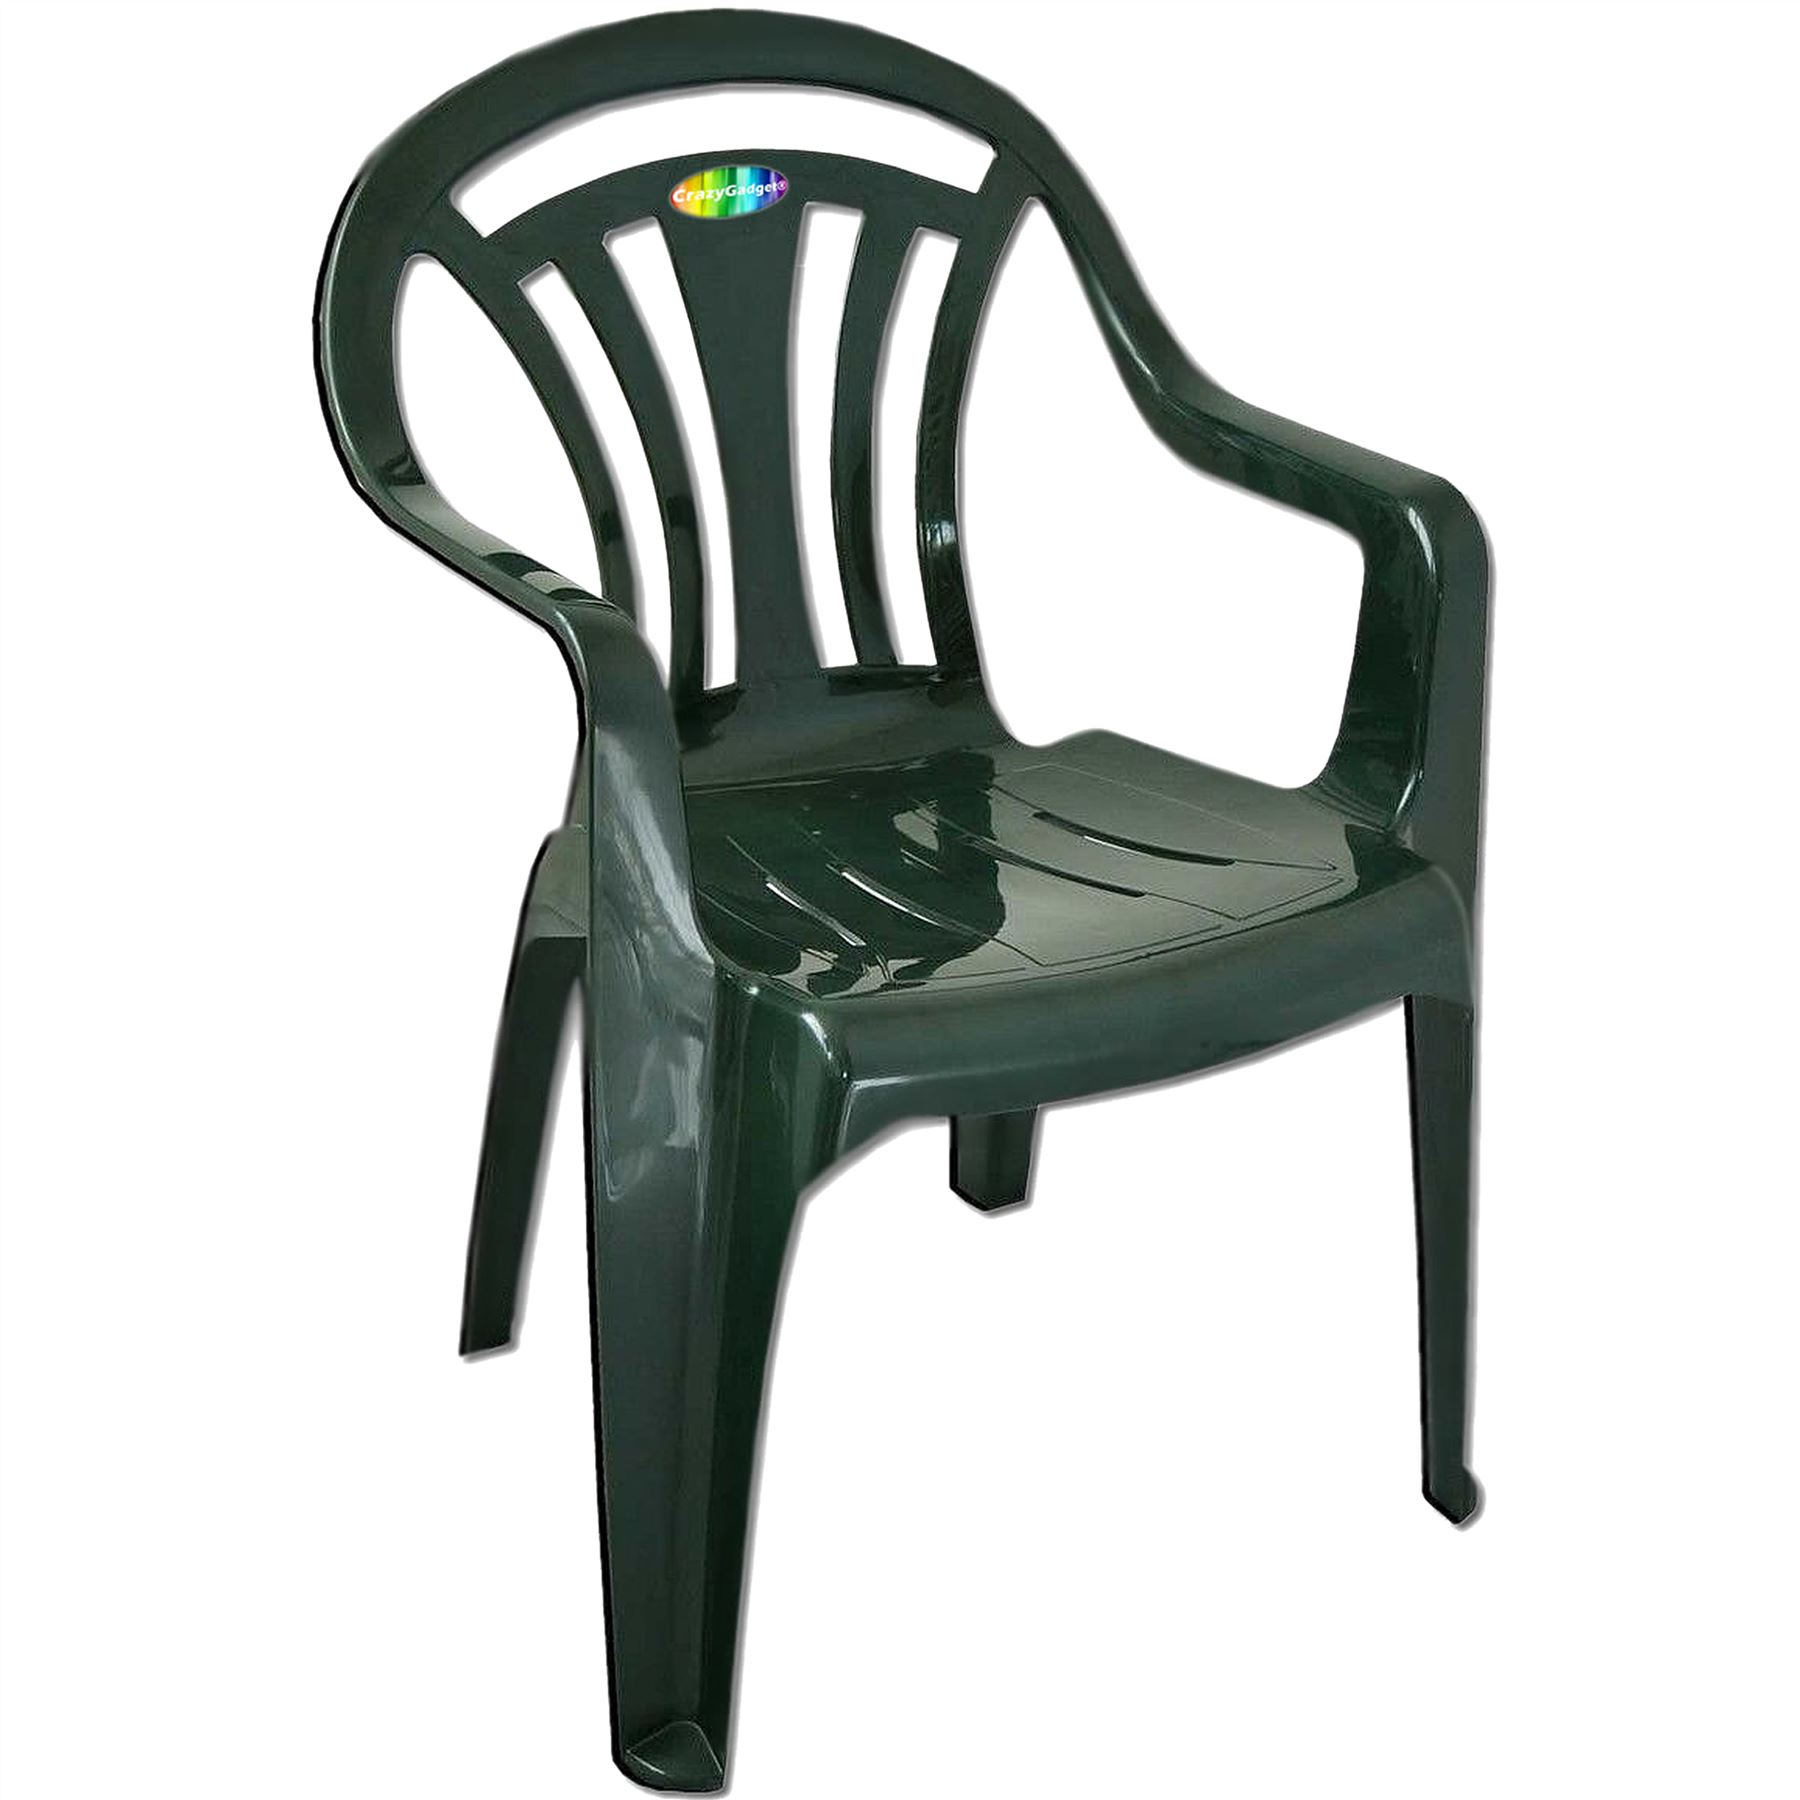 Plastic Outdoor Chair Plastic Garden Low Back Chair Stackable Patio Outdoor